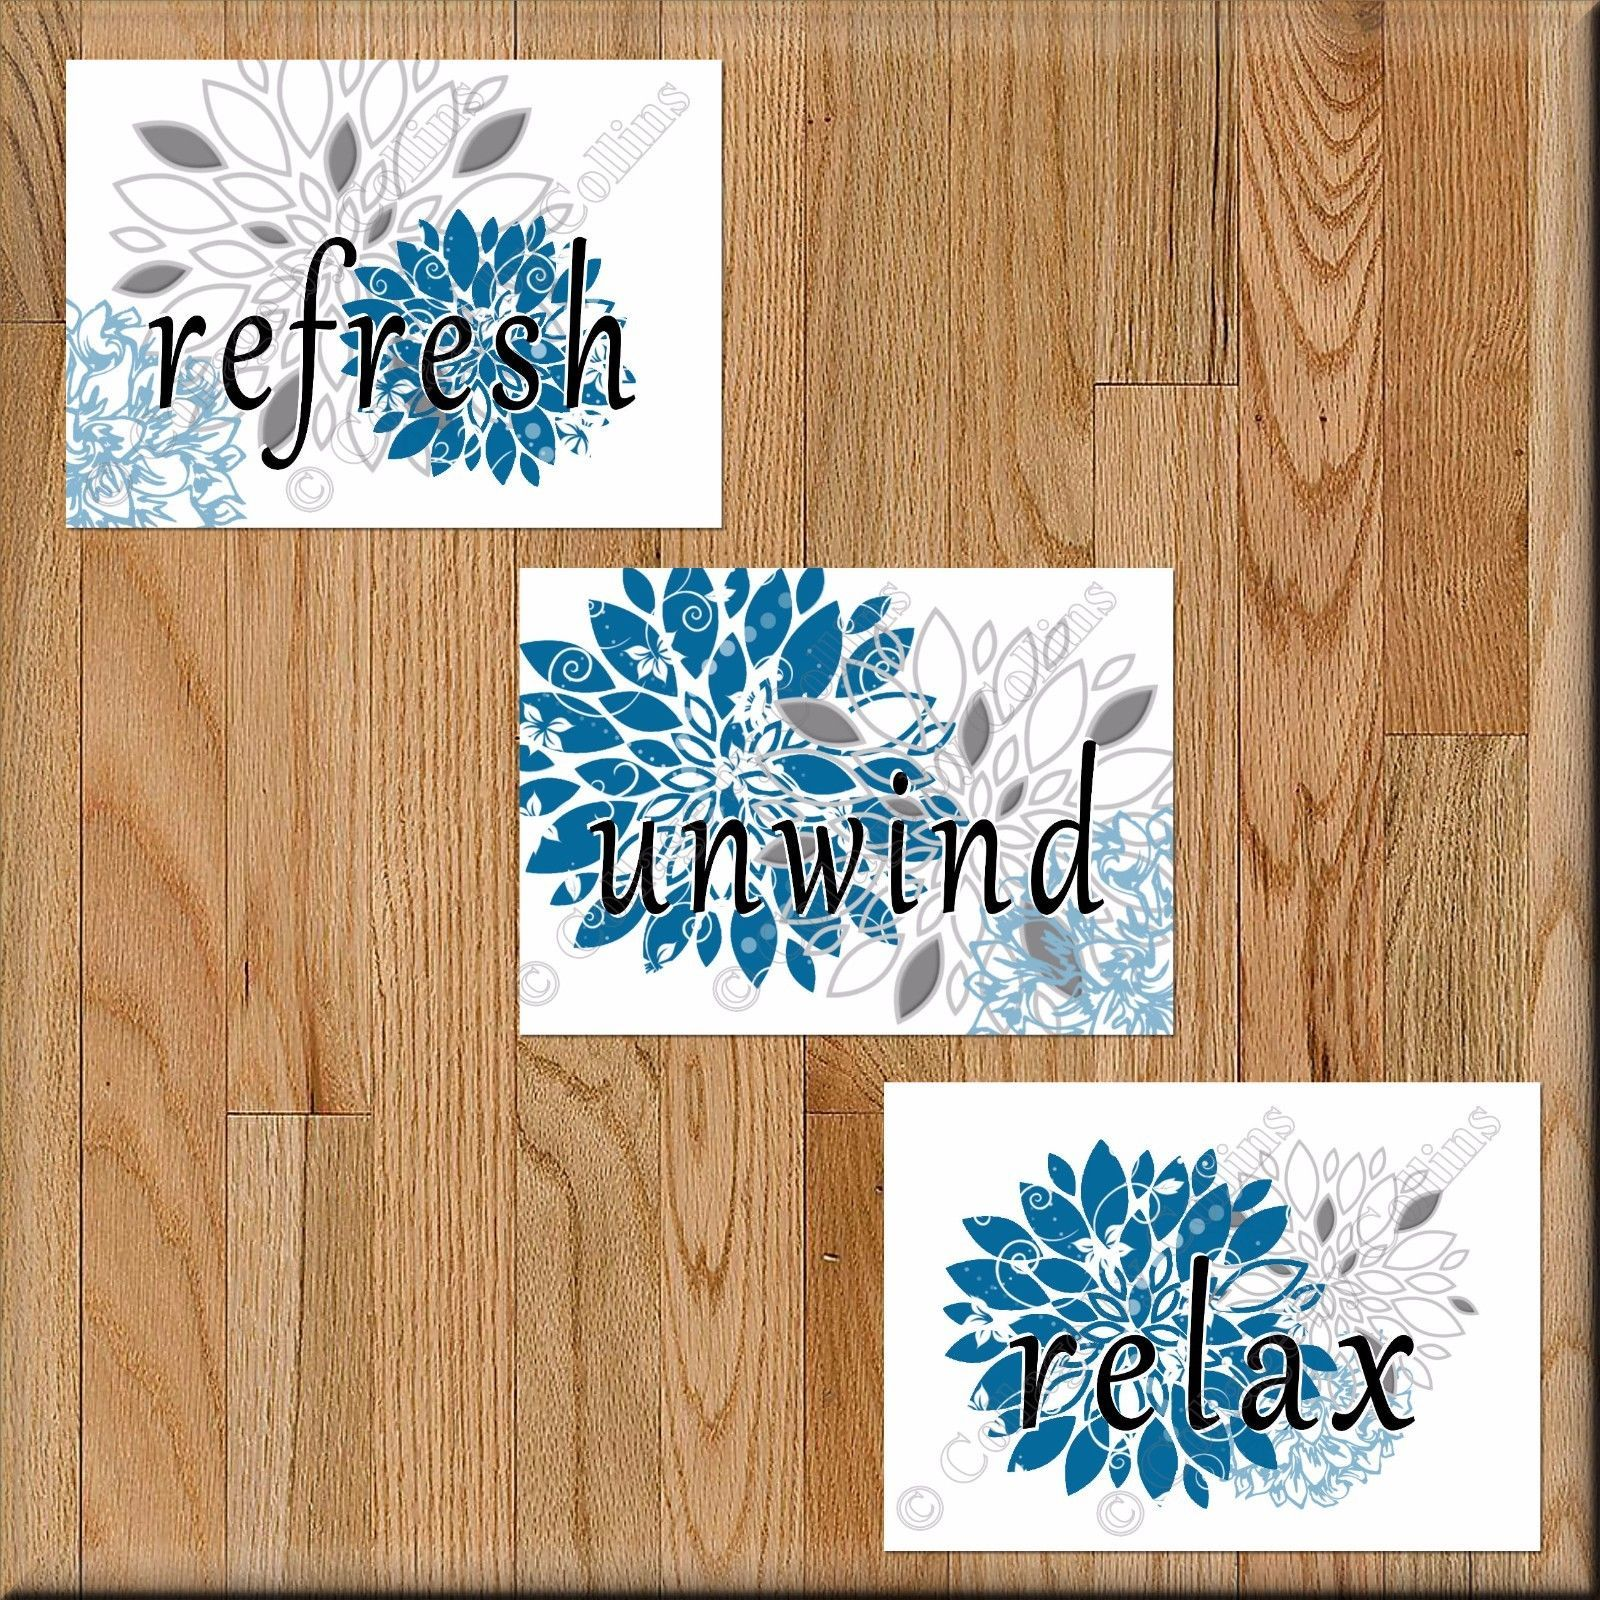 Blue Gray Bathroom Wall Art Prints Picture Floral Sayings Unwind Relax Refresh - $13.87